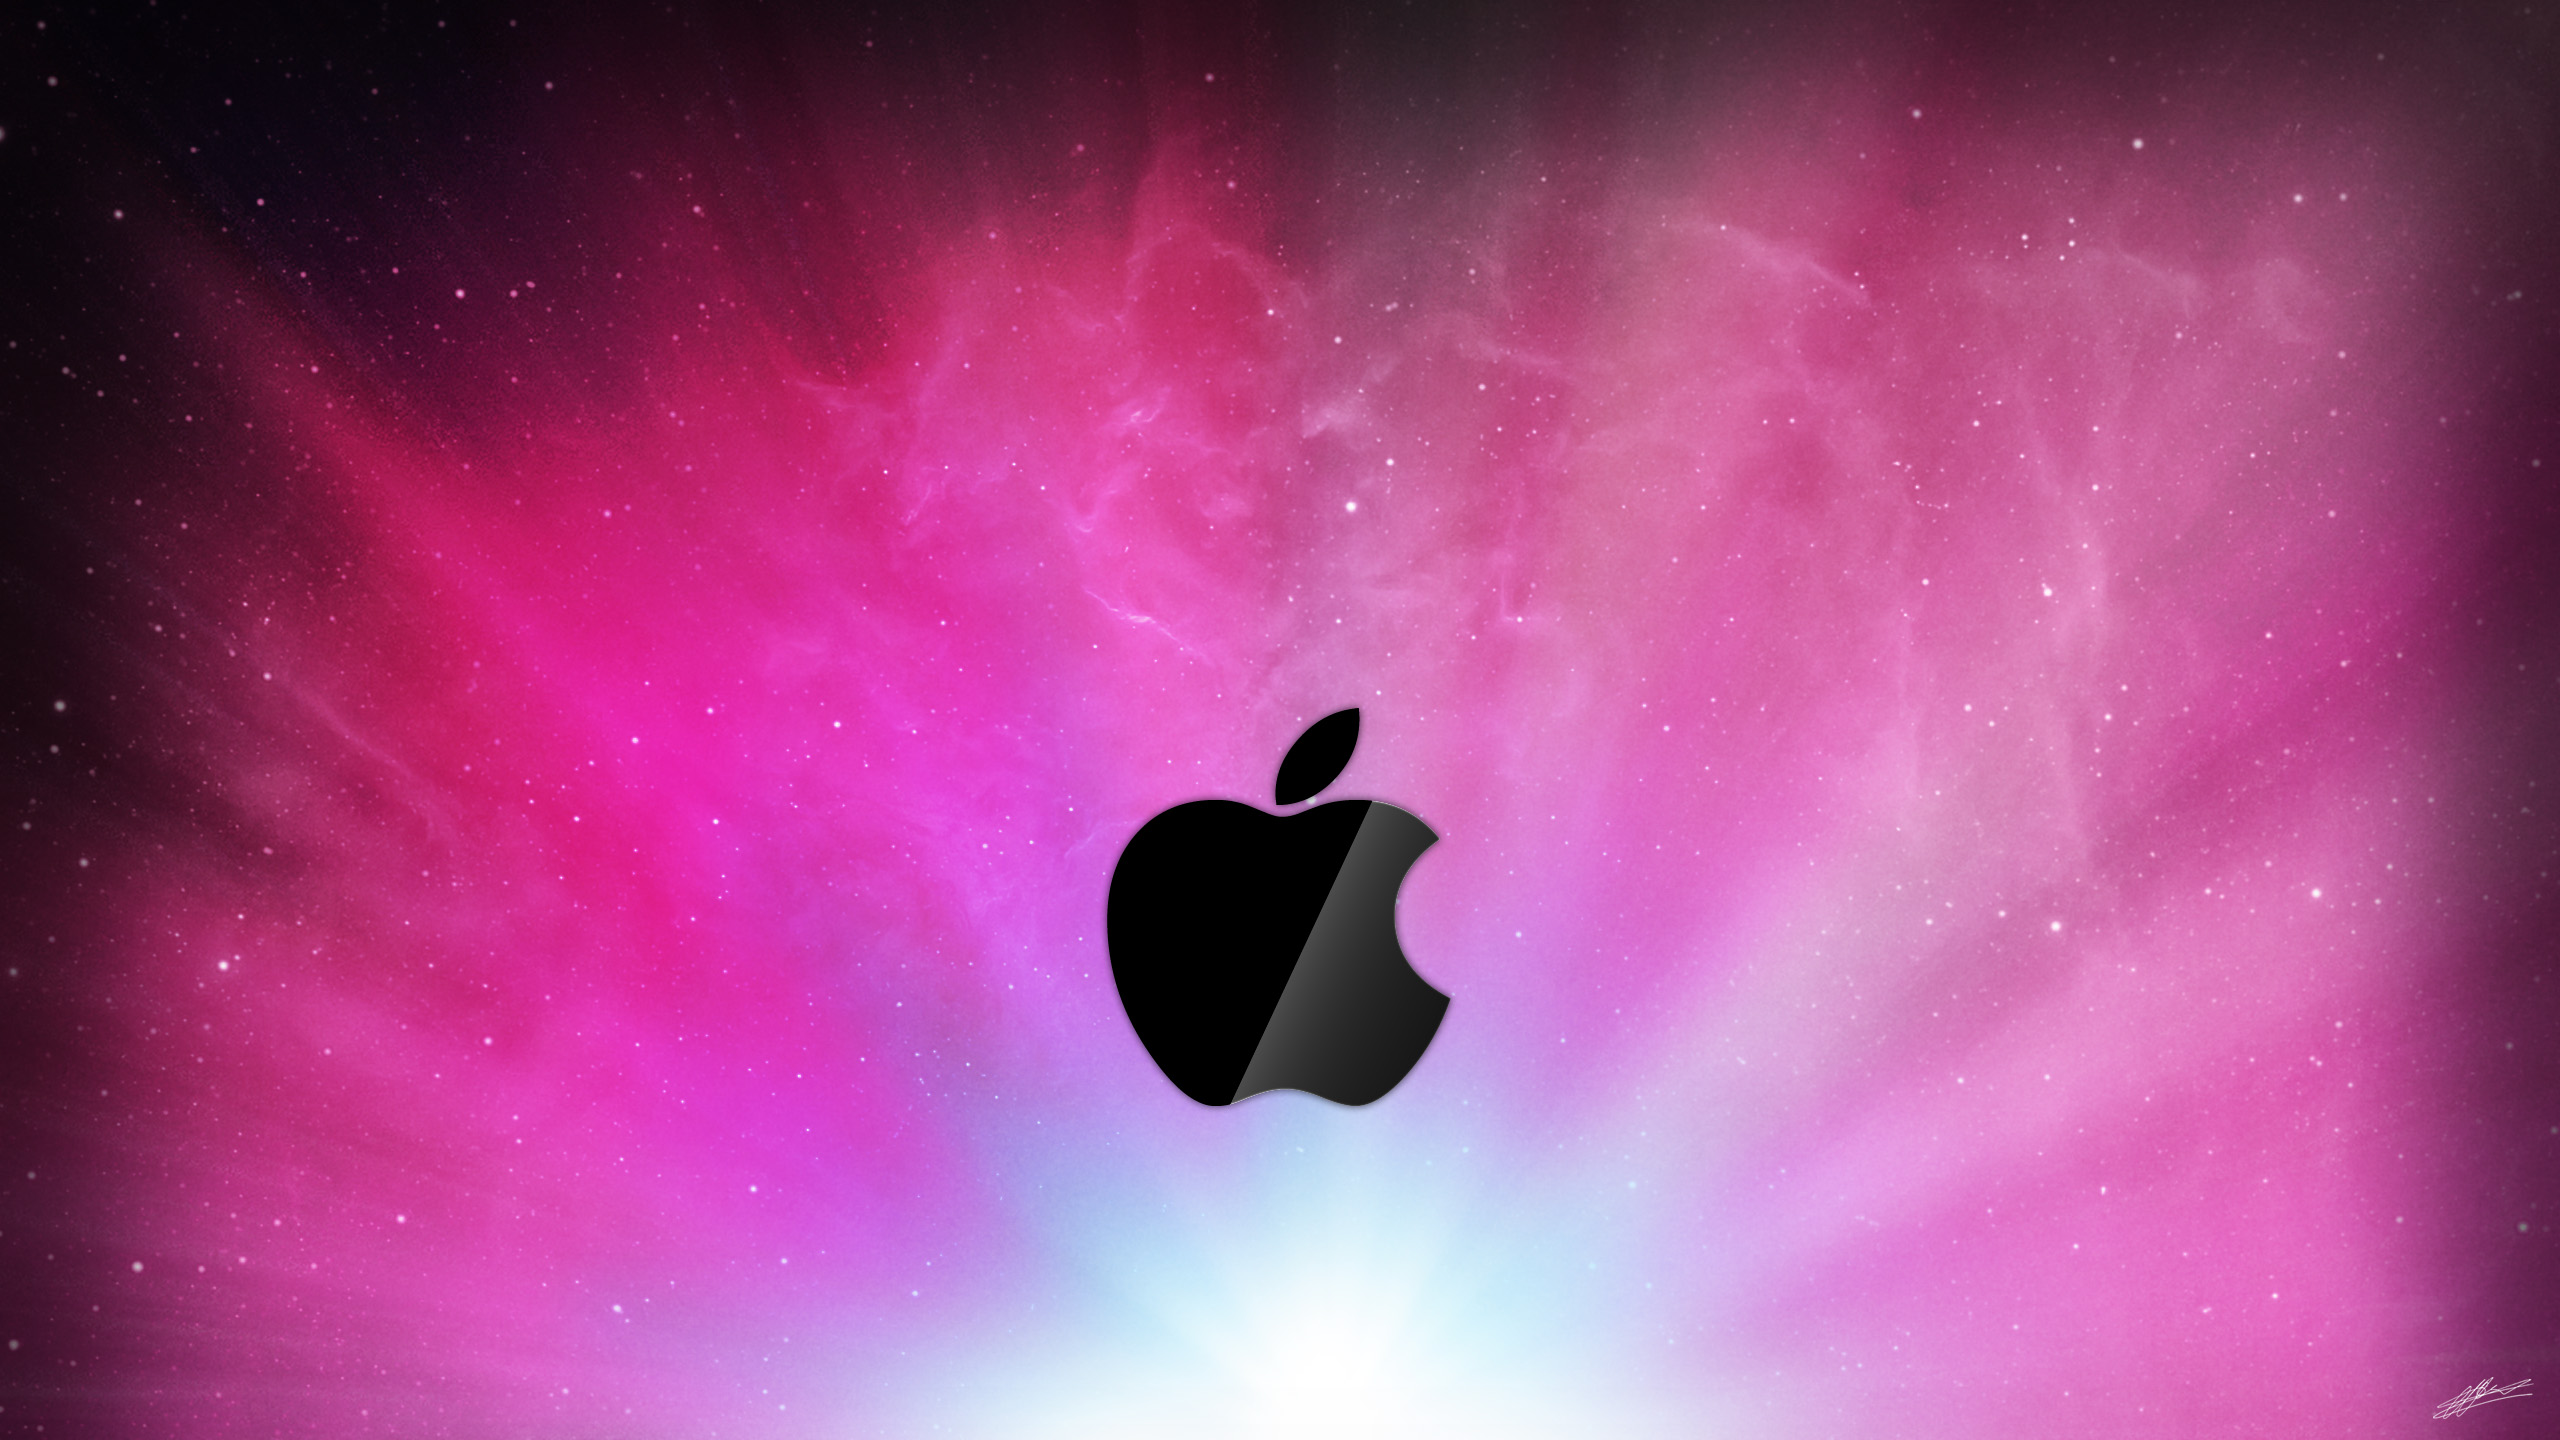 Pin On Ipad Pro Others Wallpaper: 1000+ Images About IPad Pro & Others Wallpaper! On Pinterest